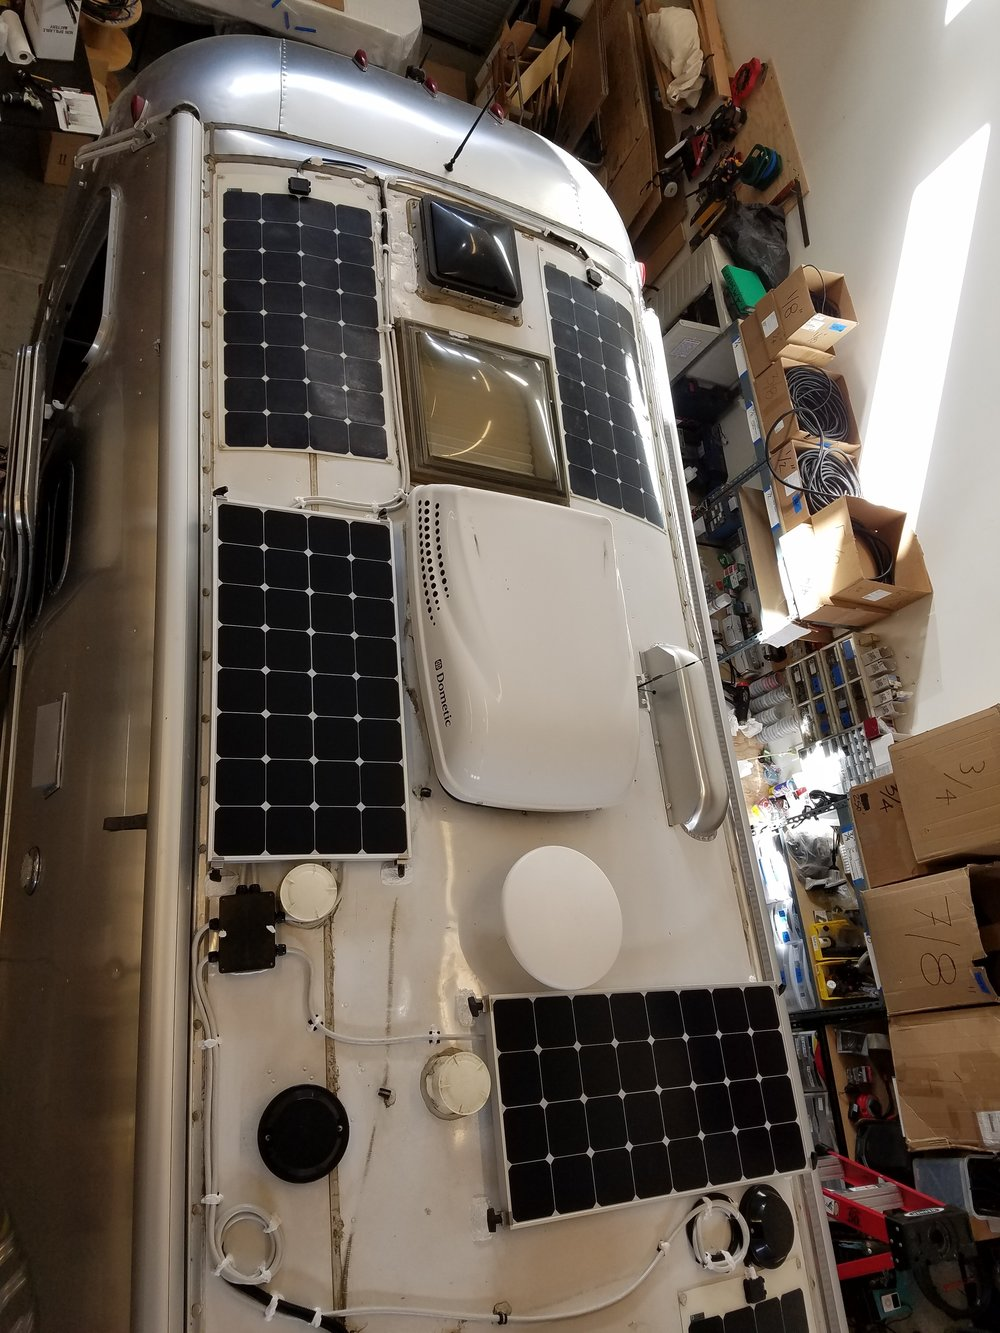 Solar Panel Installation For Rvs Trailers Am Wiring Diagrams 12 Volt Kits Equipment Added 1x Nbsp600ah Signature Lithium Battery Bank W O Color Control